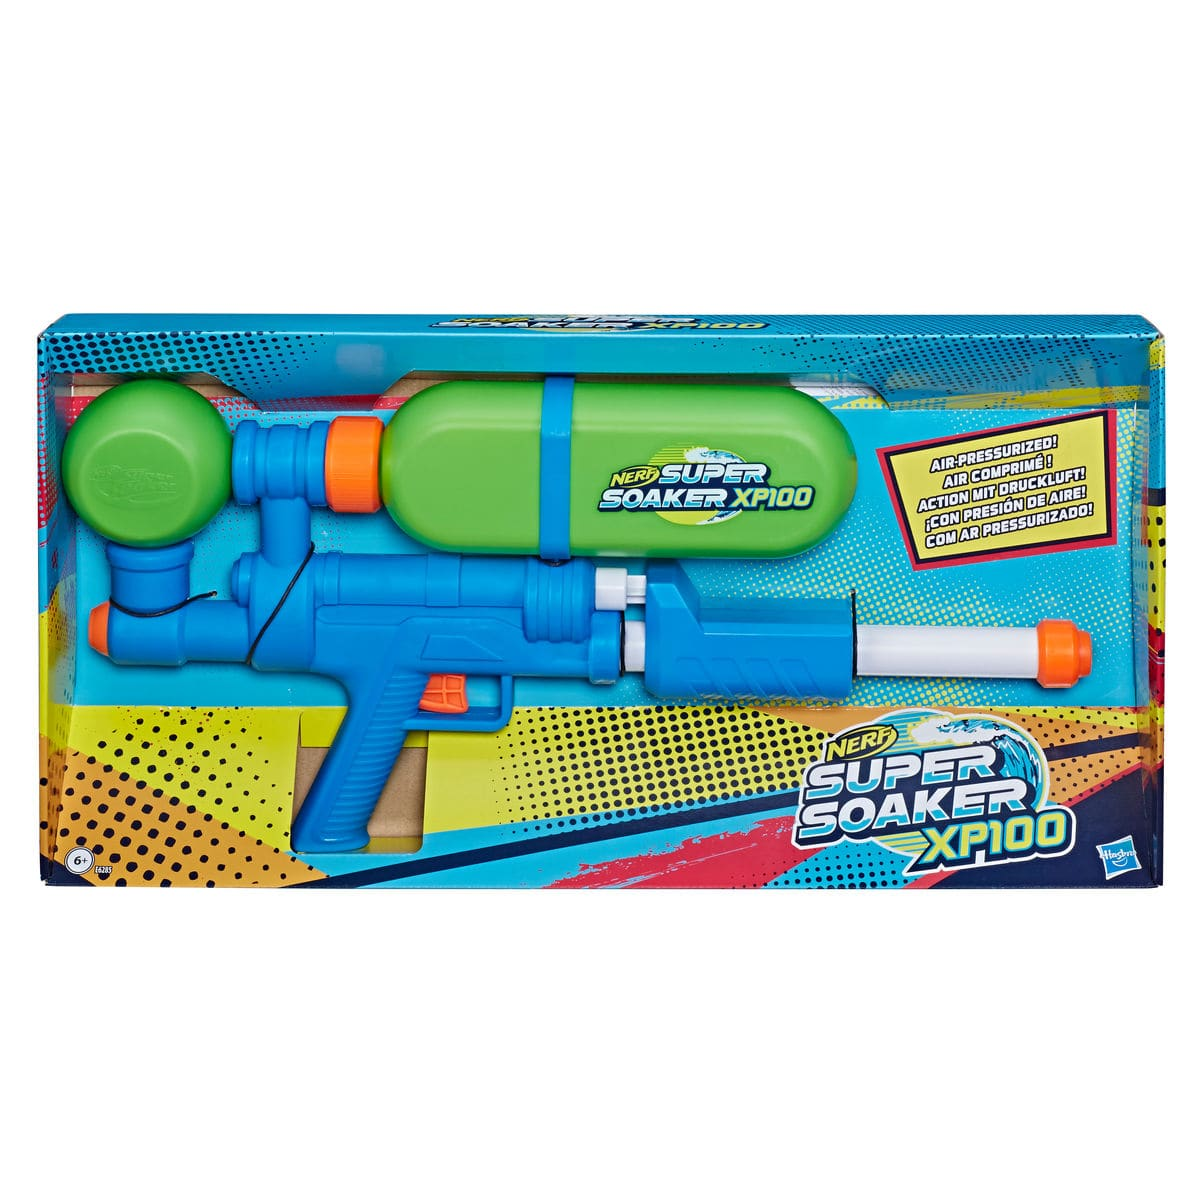 Nerf Super Soaker 100XP